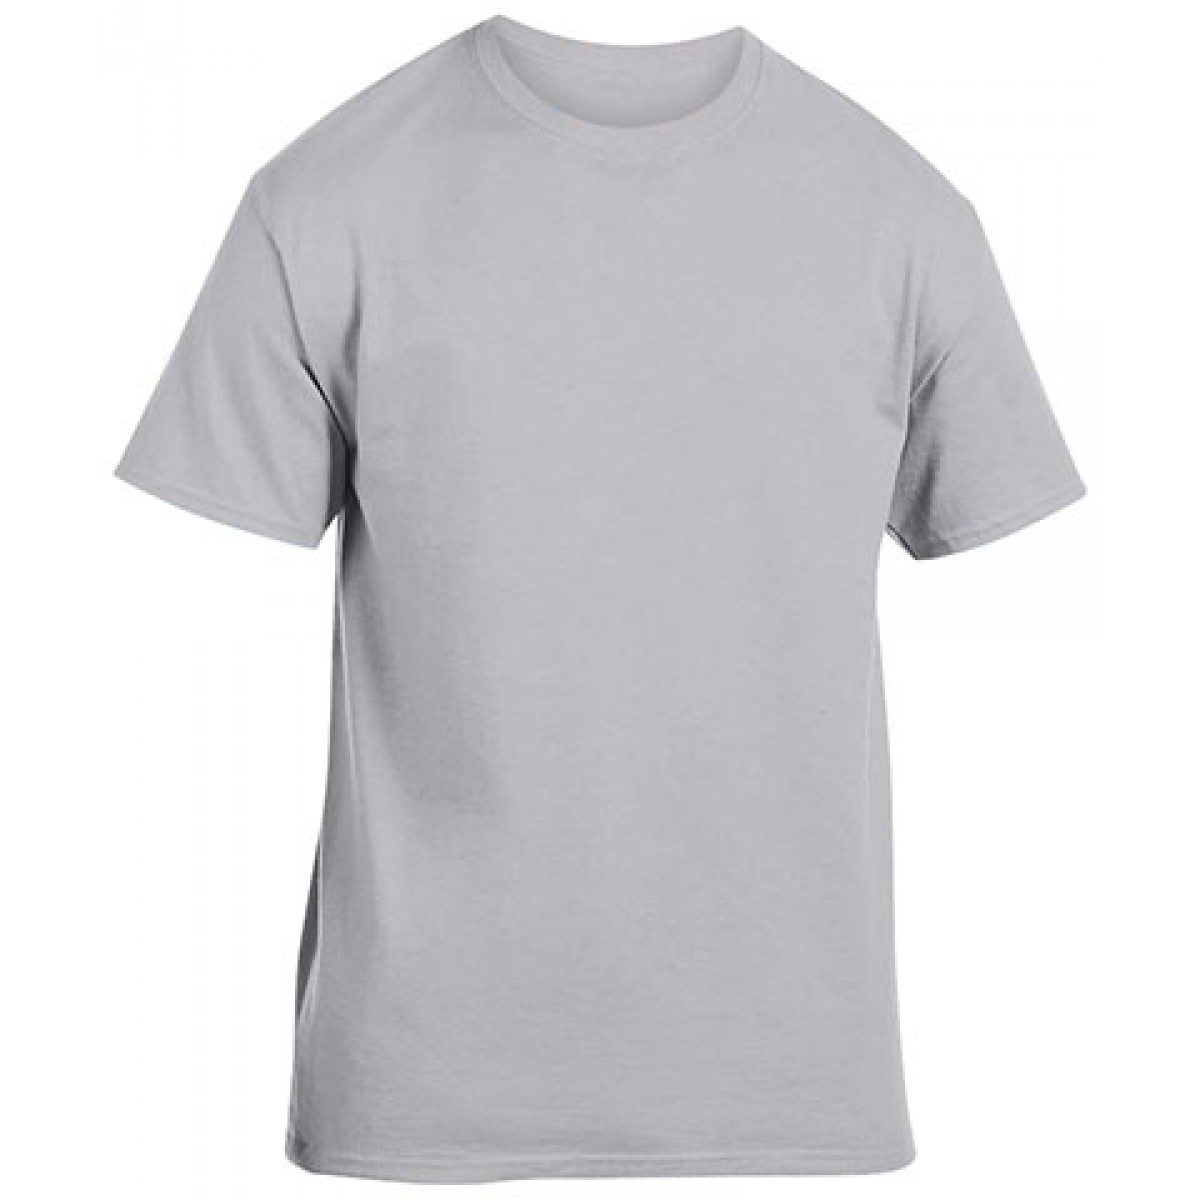 Cotton Short Sleeve T-Shirt-Gray-XL